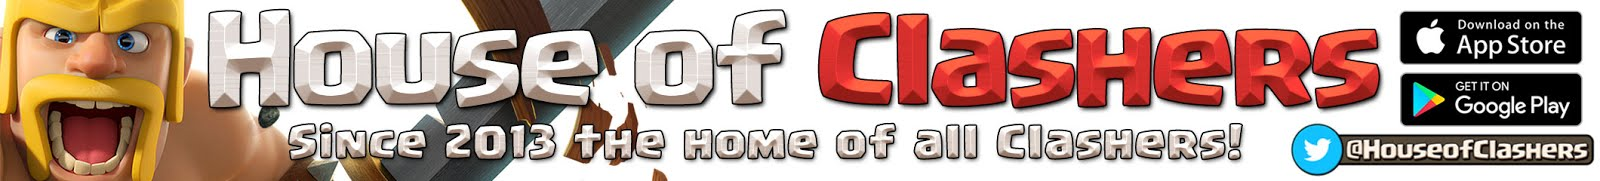 House of Clashers - Tips and Tactics to Boom Beach, Clash of Clans and Clash Royale.